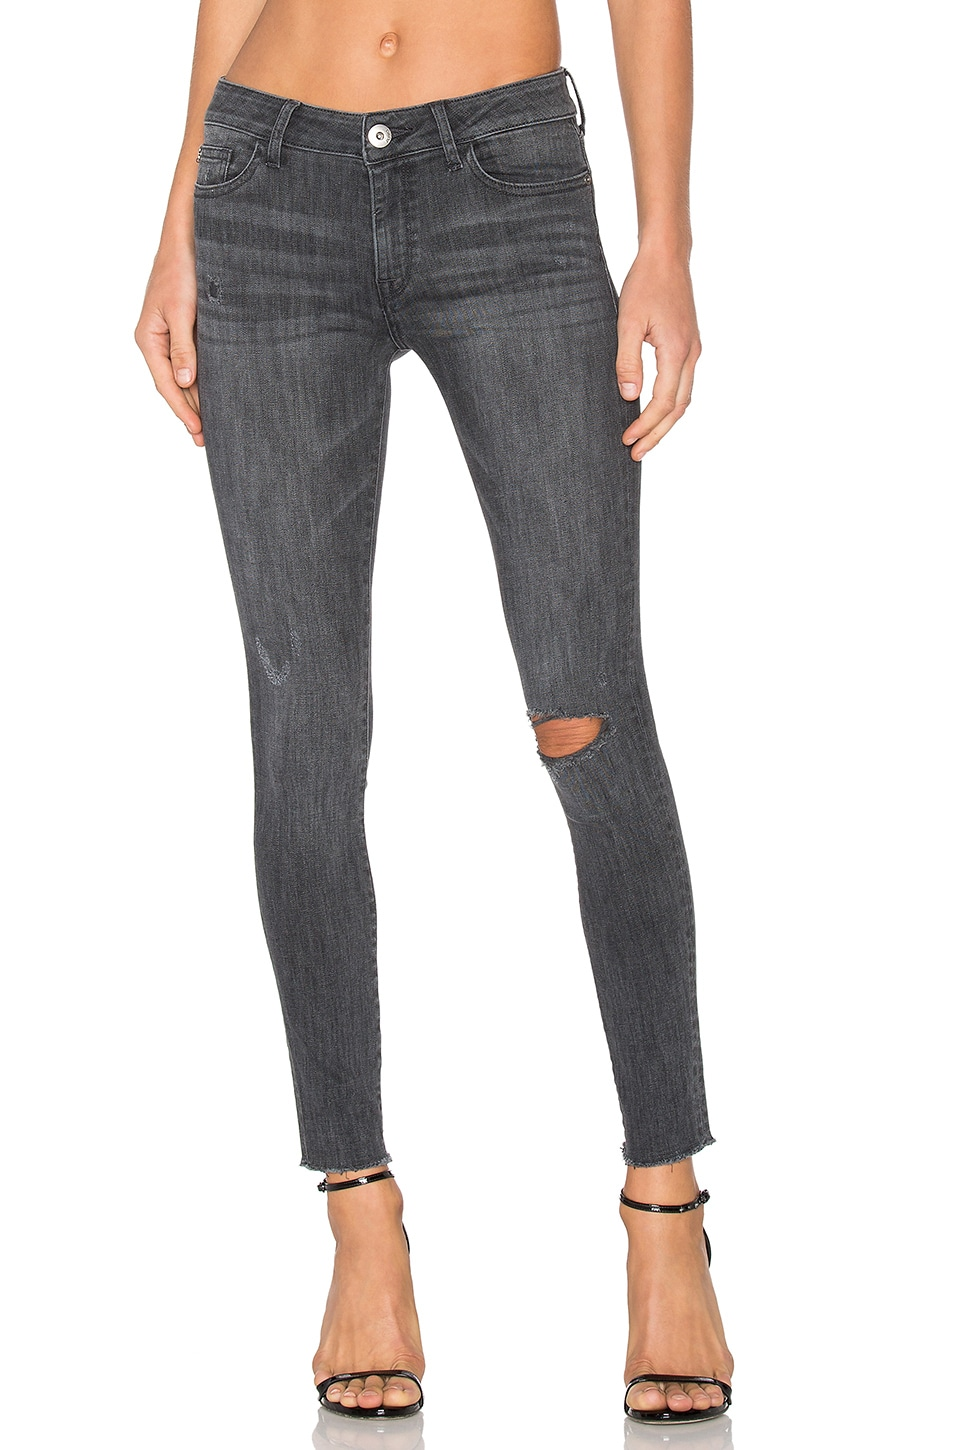 DL1961 x Jessica Alba No. 3 Instasculpt Skinny in Weathered